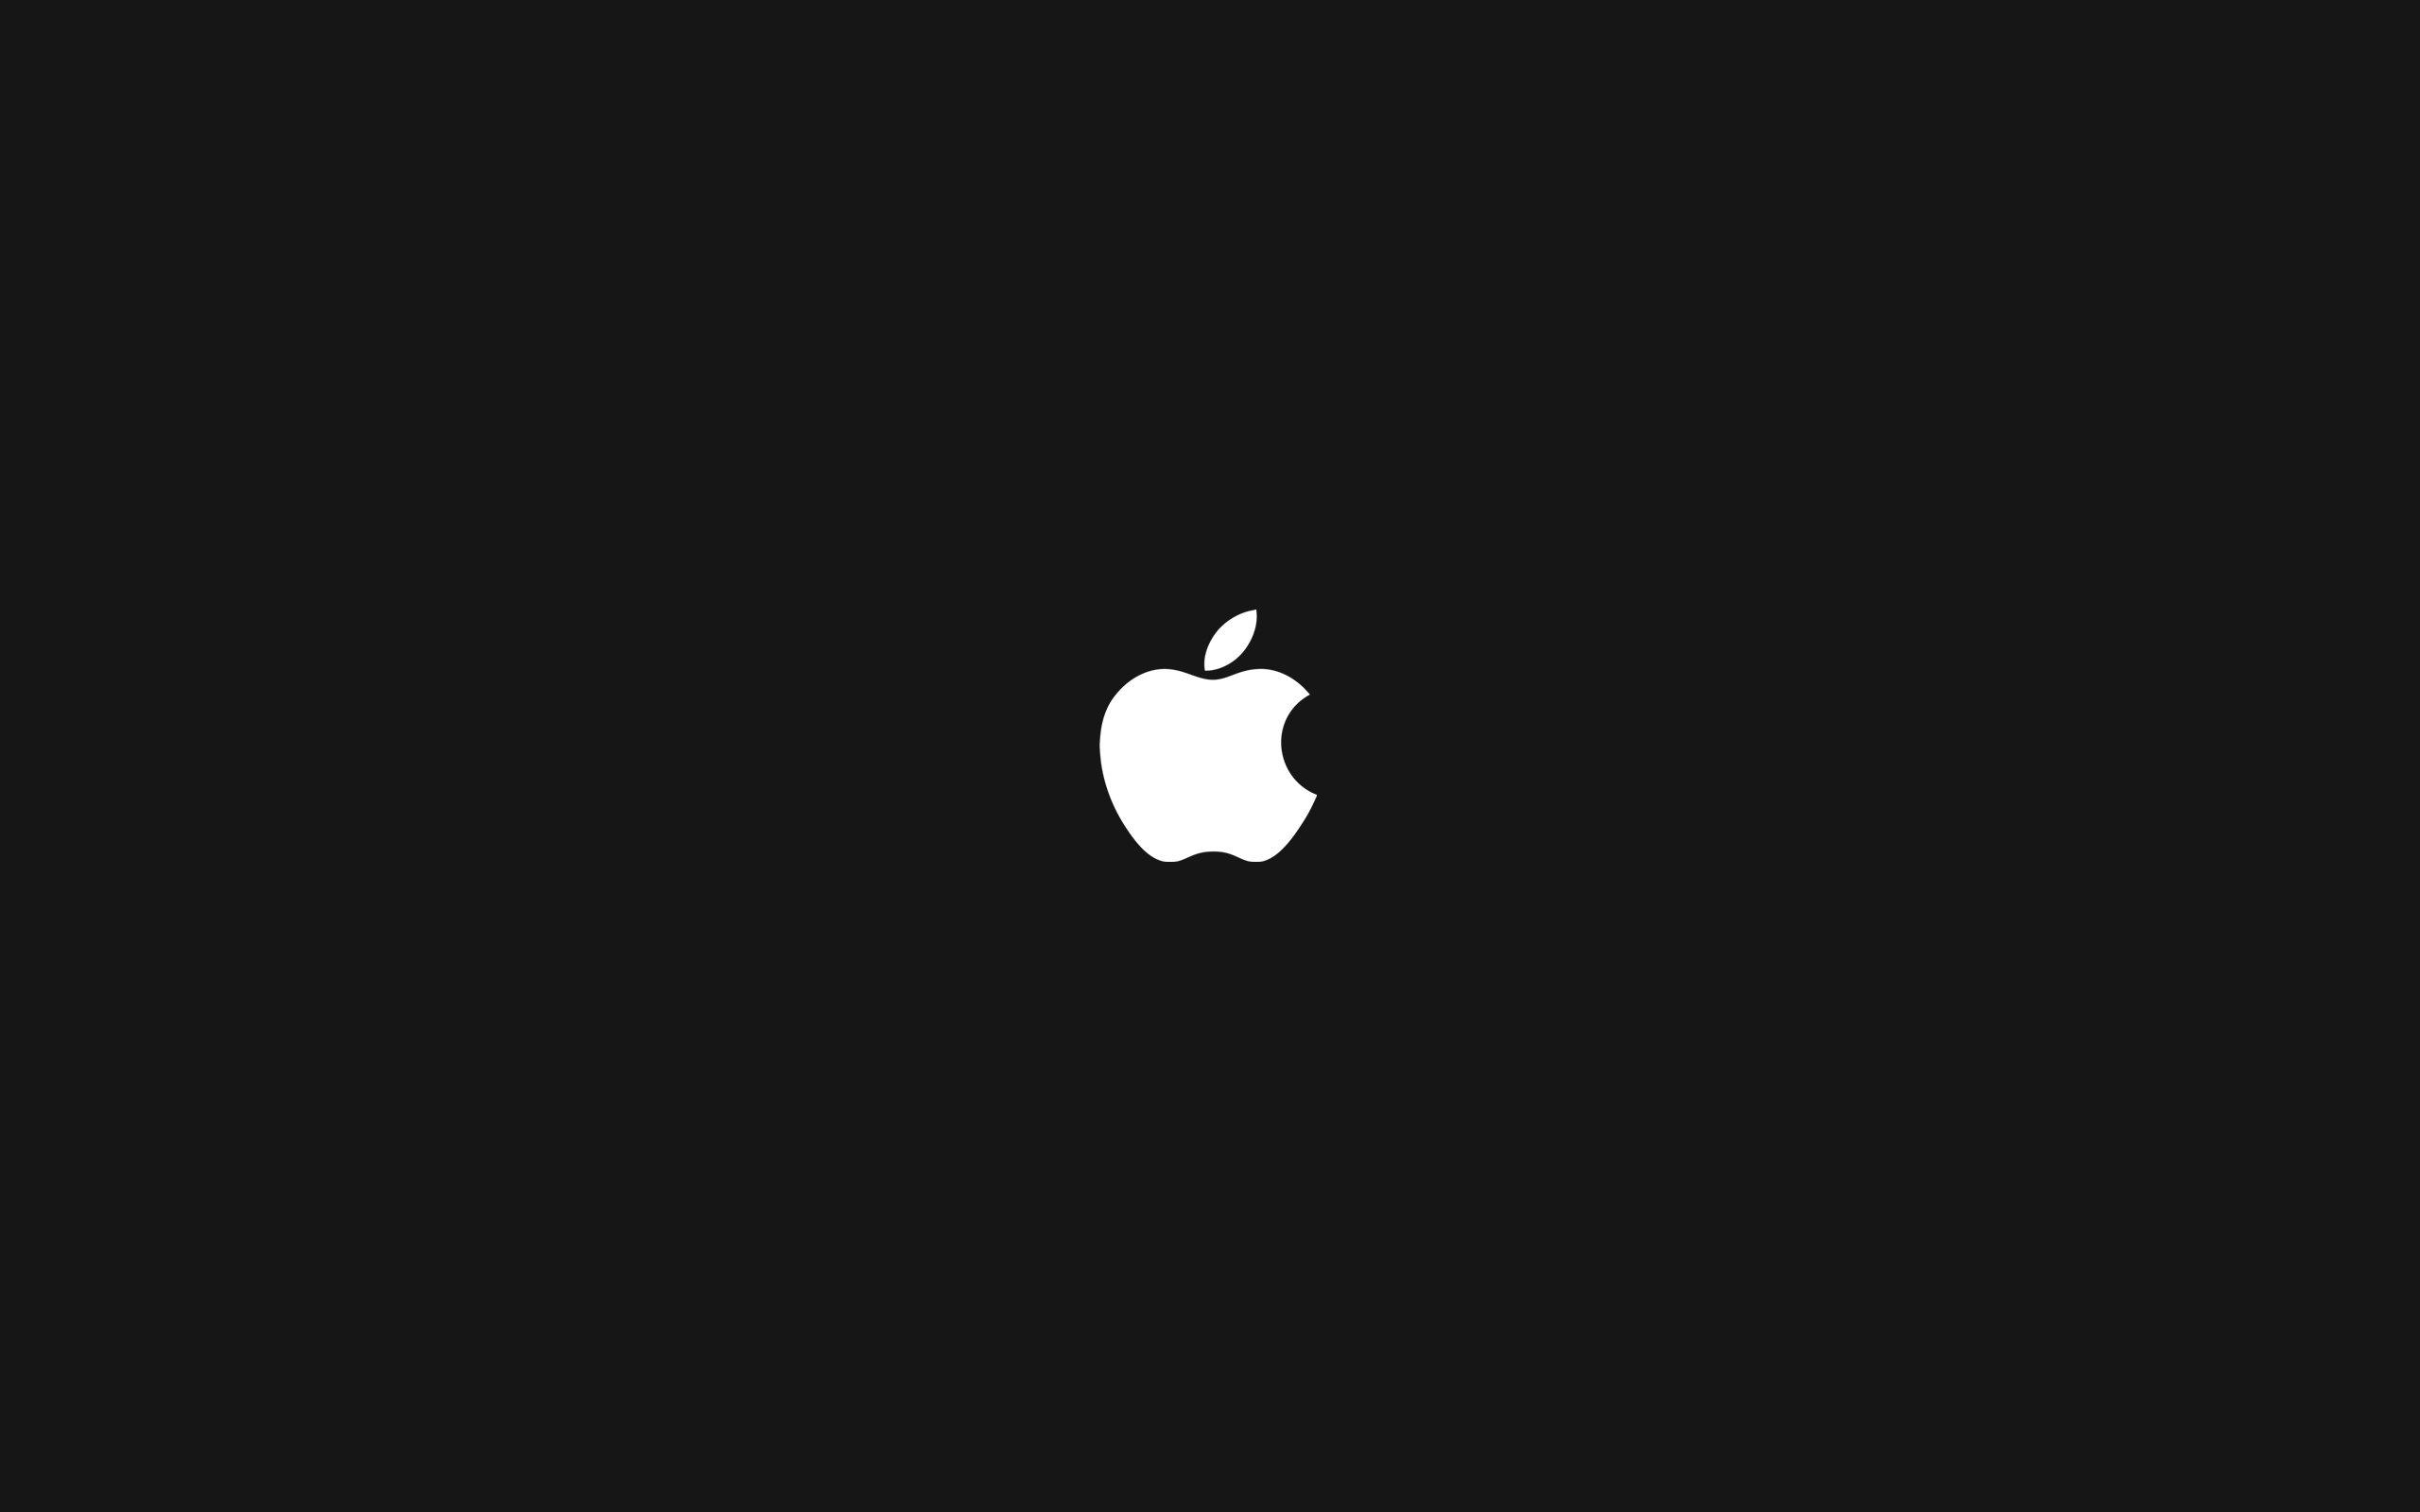 Обои Apple logo 2560x1600